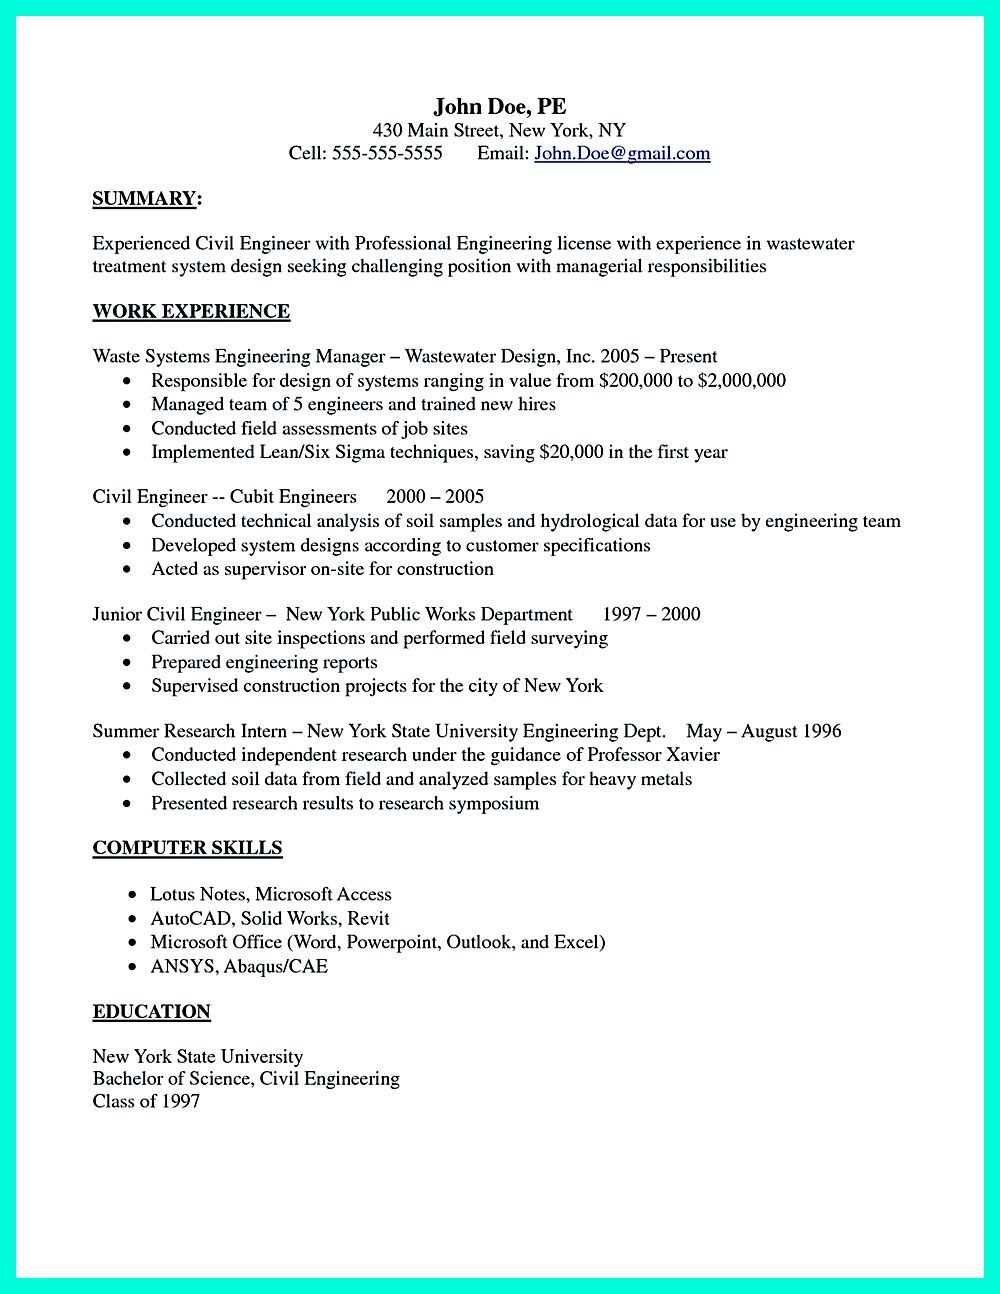 Resume Resume Format Civil Engineer there are so many civil engineering resume samples you can download one of good and